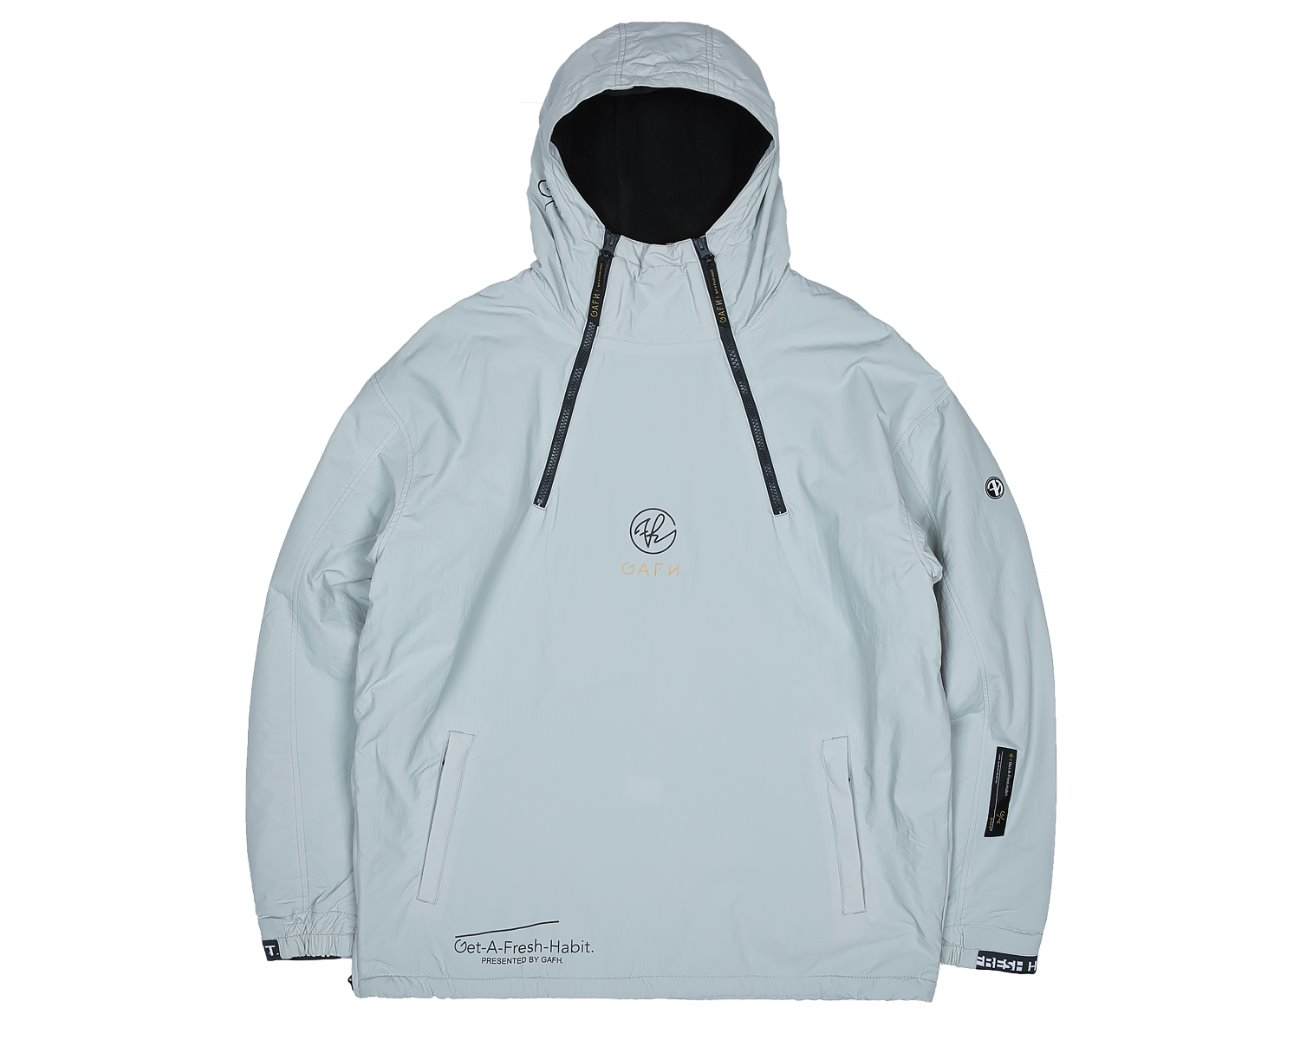 DOUBLE ZIP UP PULLOVER WHITEGRAY / GAFH